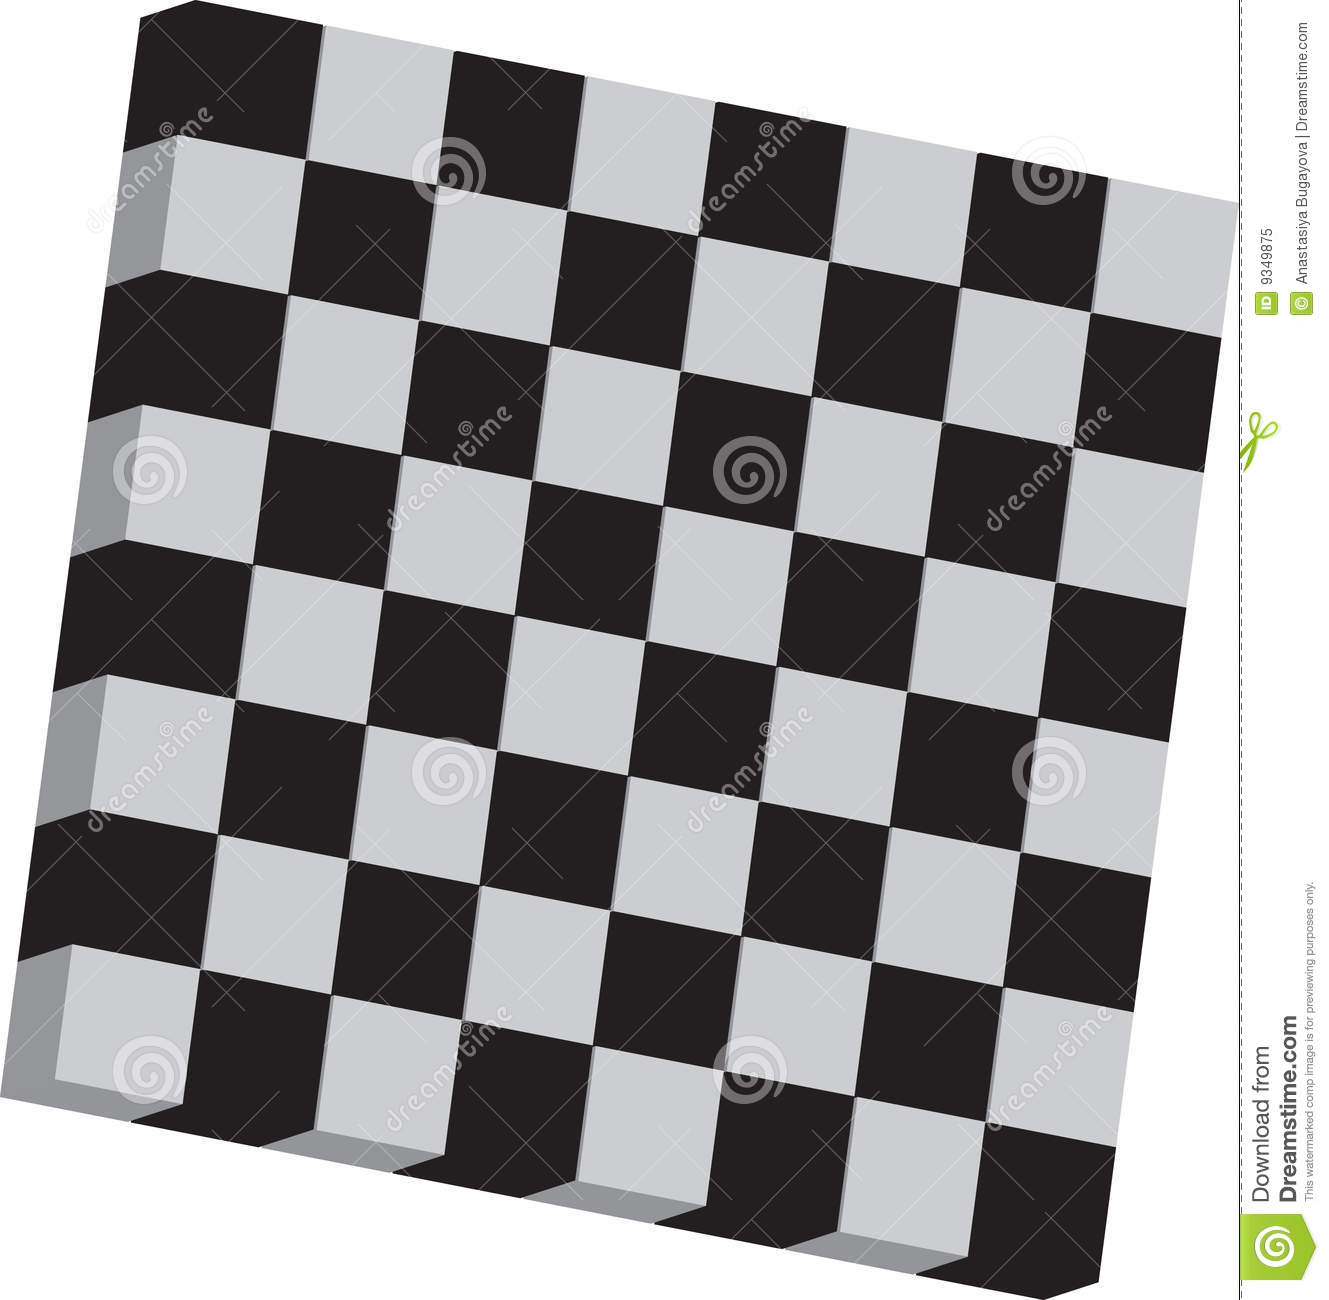 free illustration chessboard render - photo #20